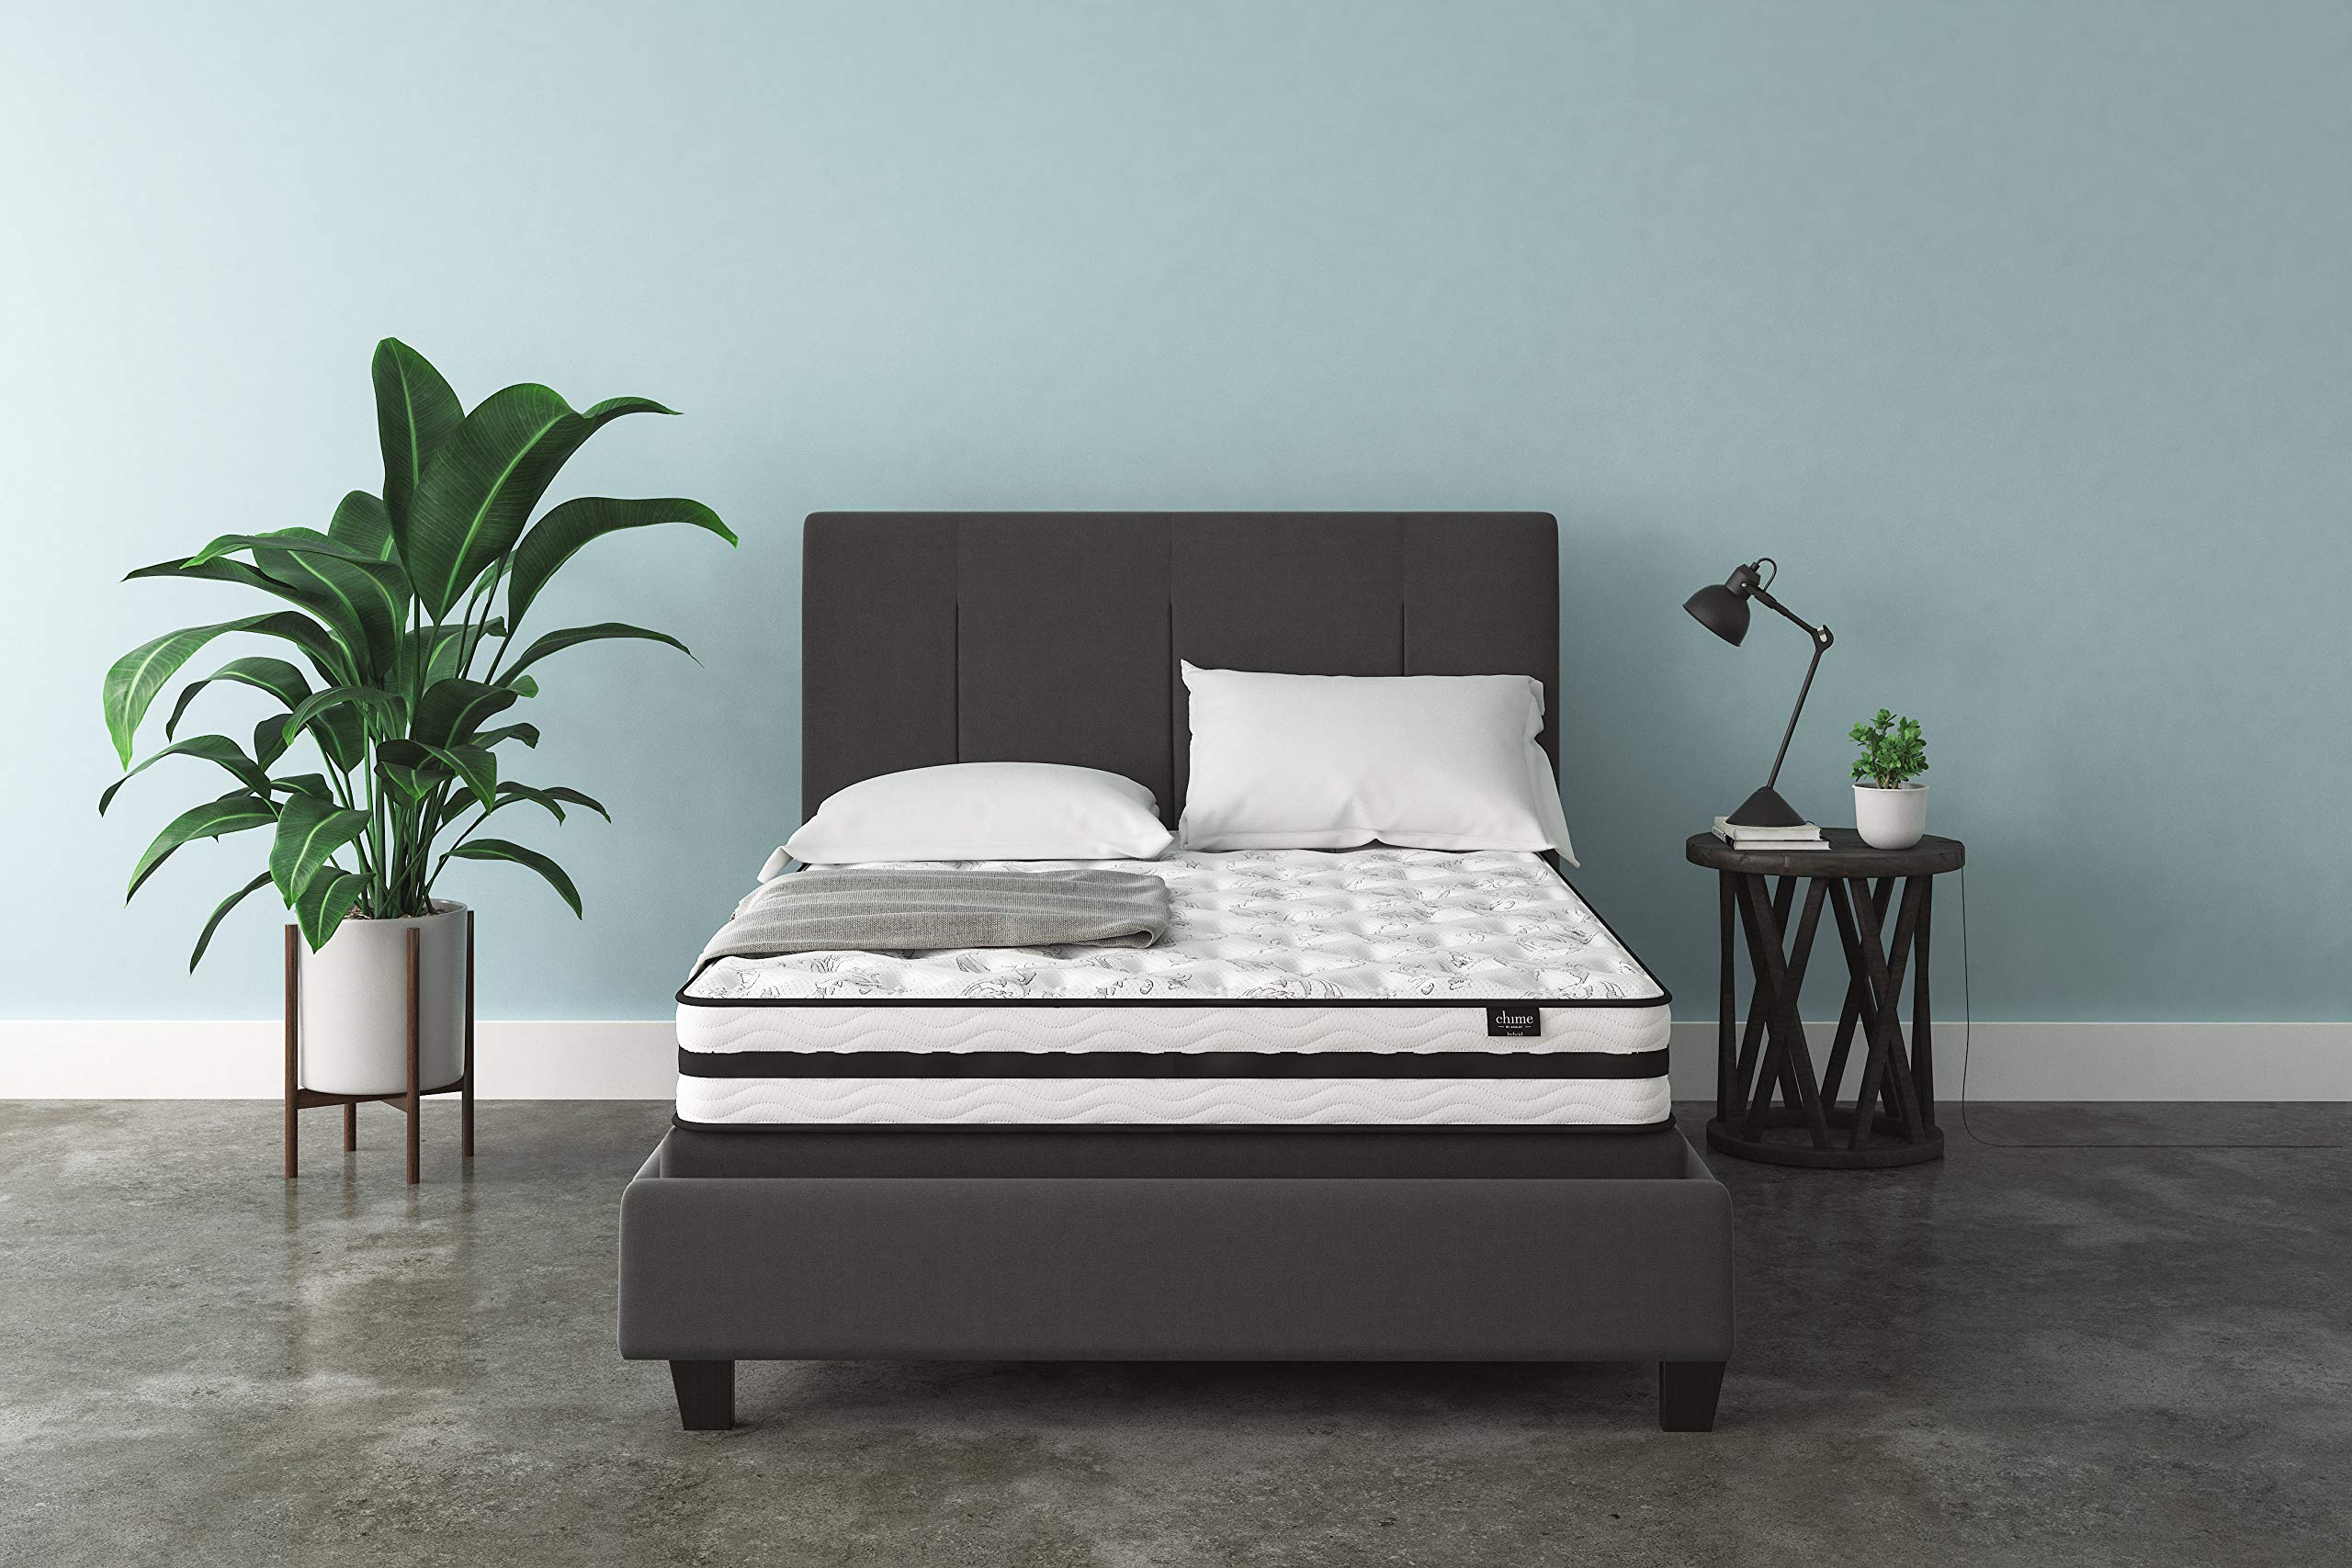 Ashley Furniture Signature Design - 8 Inch Chime Express Hybrid Innerspring - Firm Mattress - Bed in a Box - Queen - White by Signature Design by Ashley